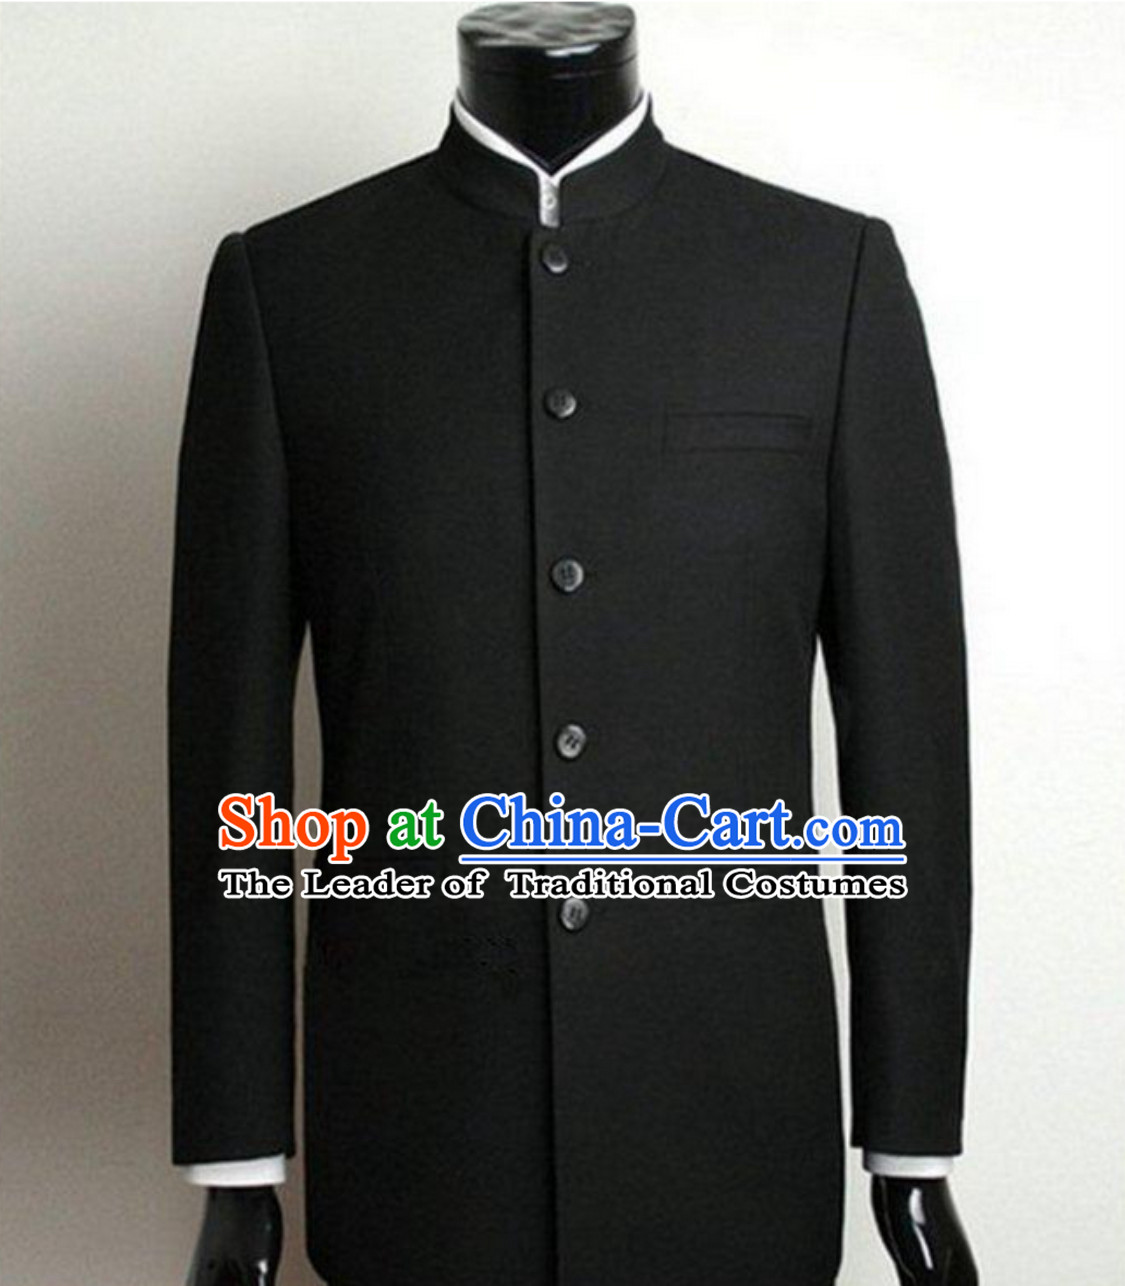 Formal Chinese Black Wedding Tang Suit